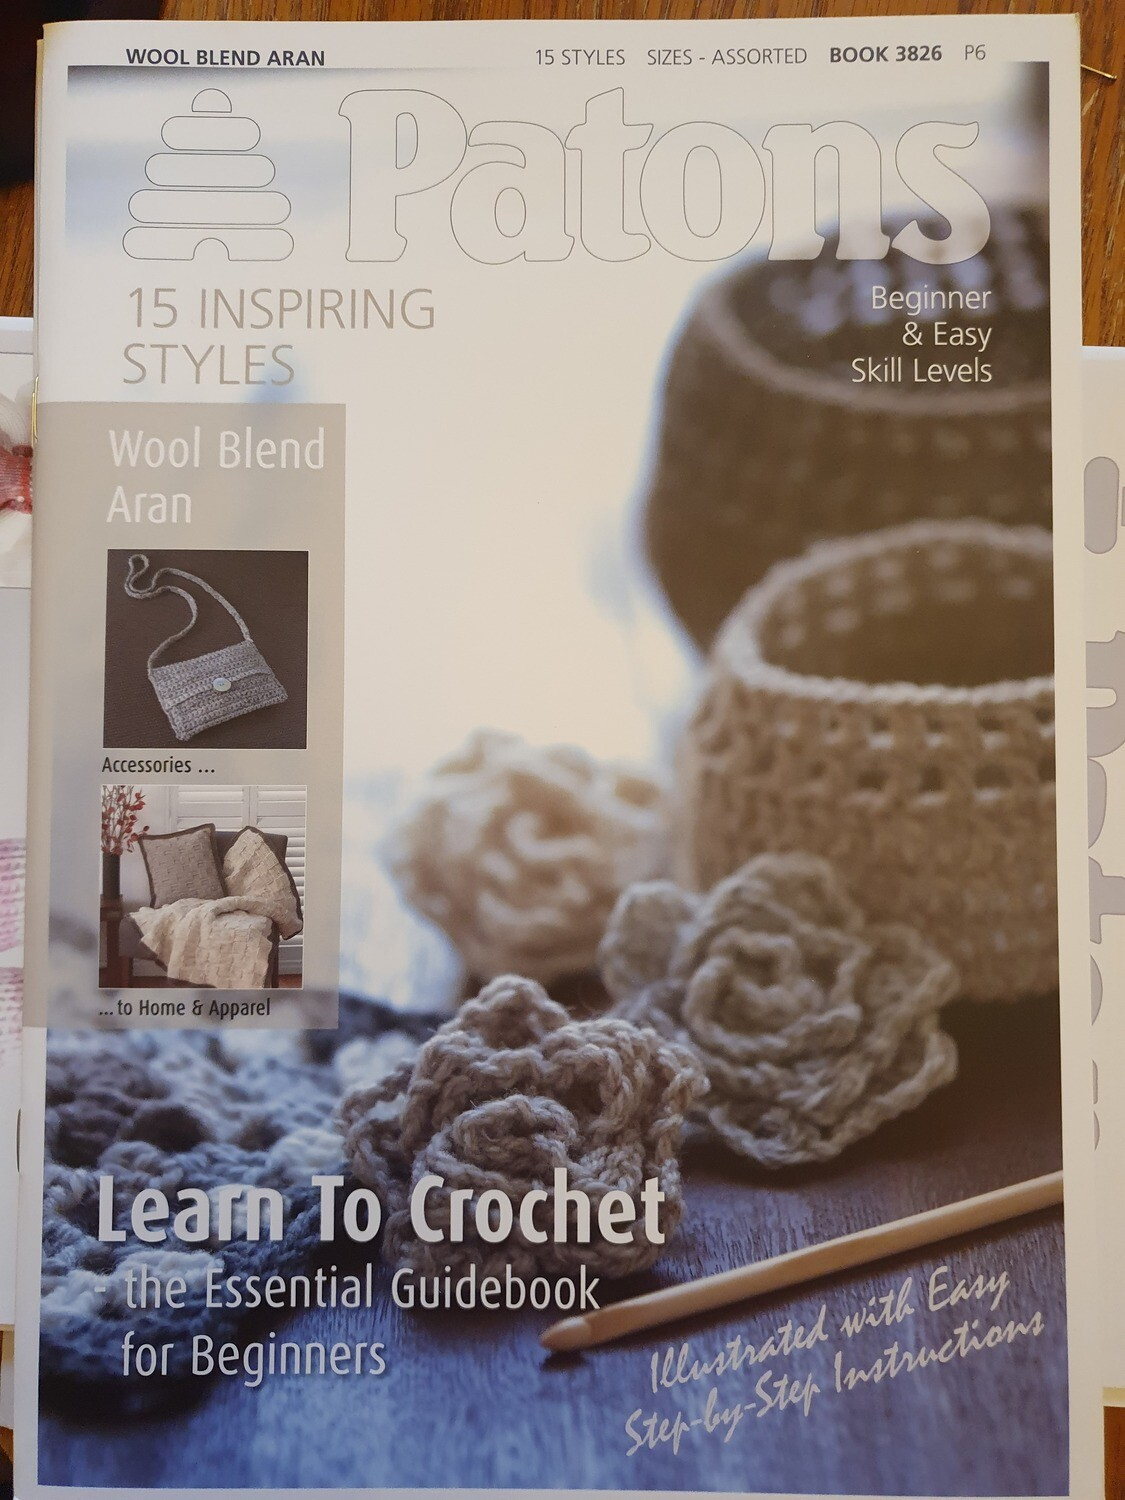 Learn Crochet using Wool Blend Aron by Patons